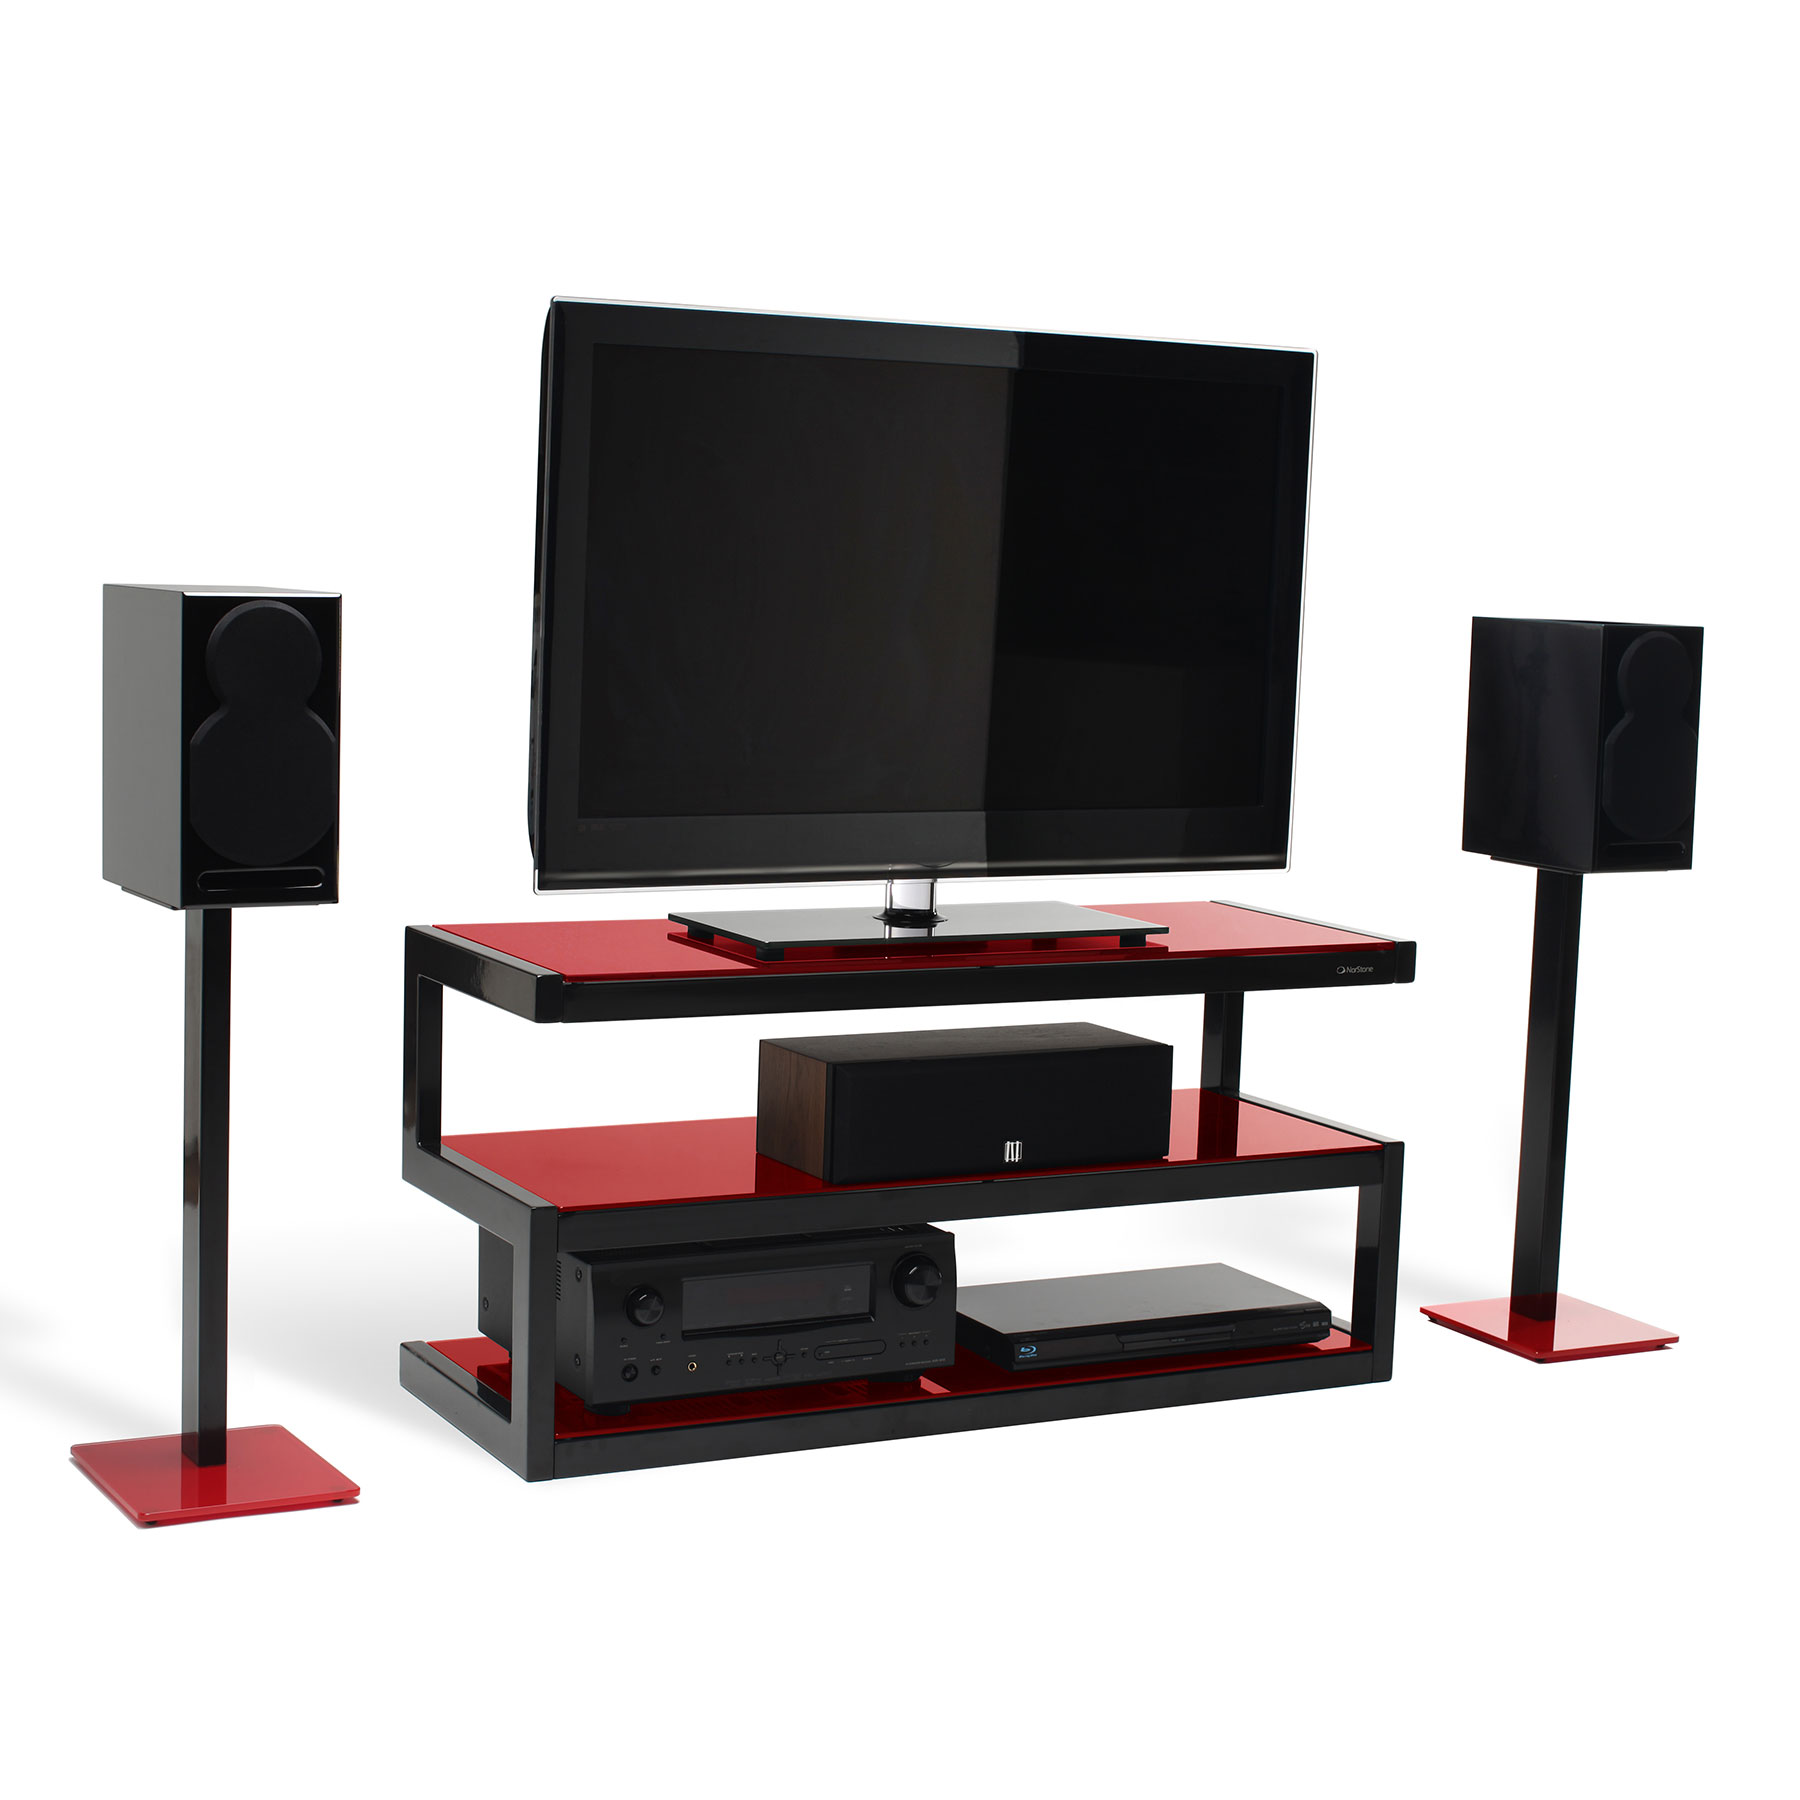 norstone esse blanc meuble tv norstone sur ldlc. Black Bedroom Furniture Sets. Home Design Ideas